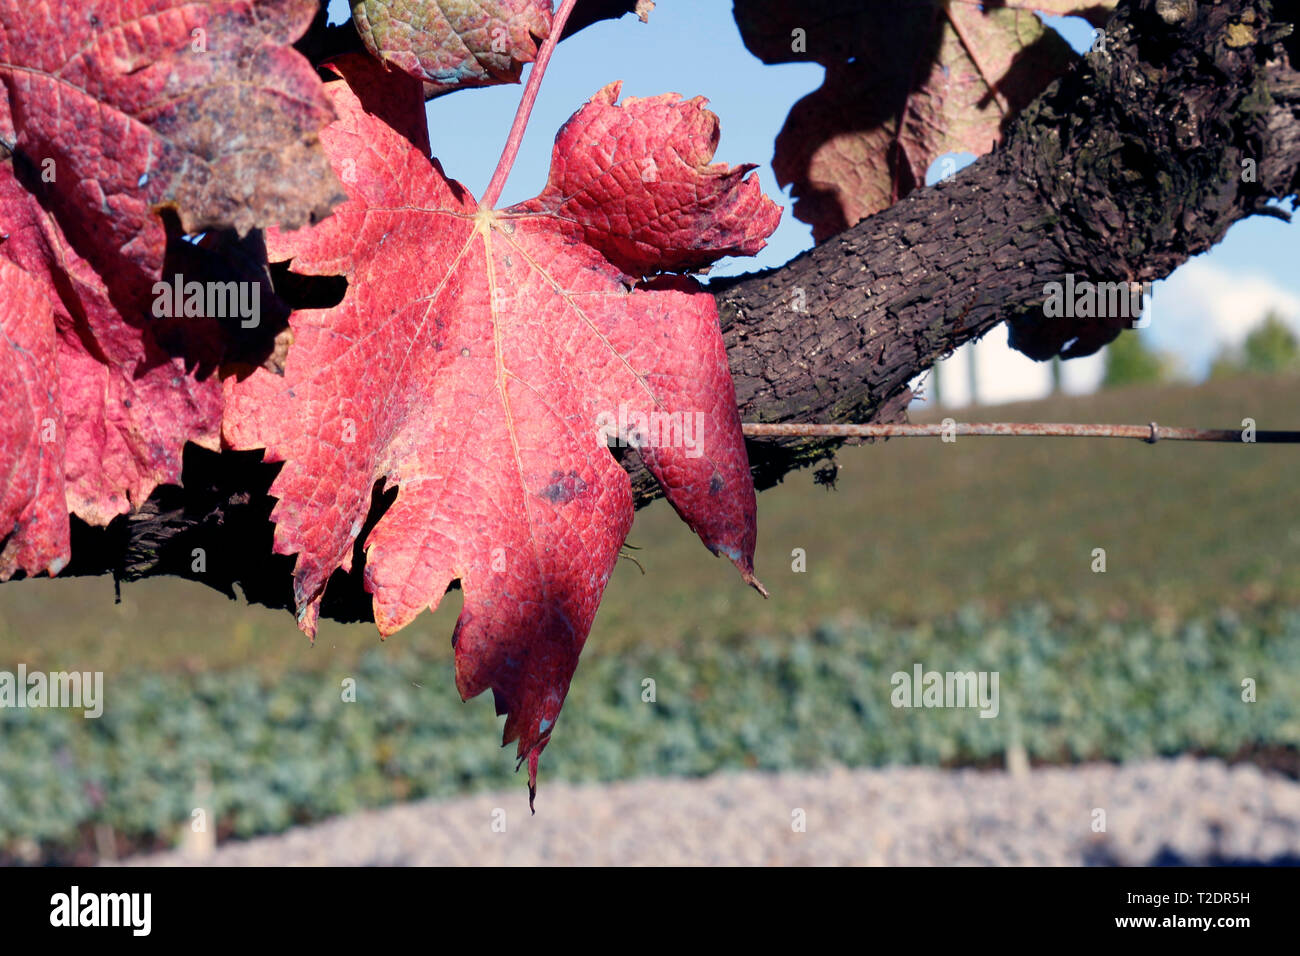 On the branch of the vine, supported by steel wire, the already red leaves of autumn, draw their shape. It is Brazil Stock Photo